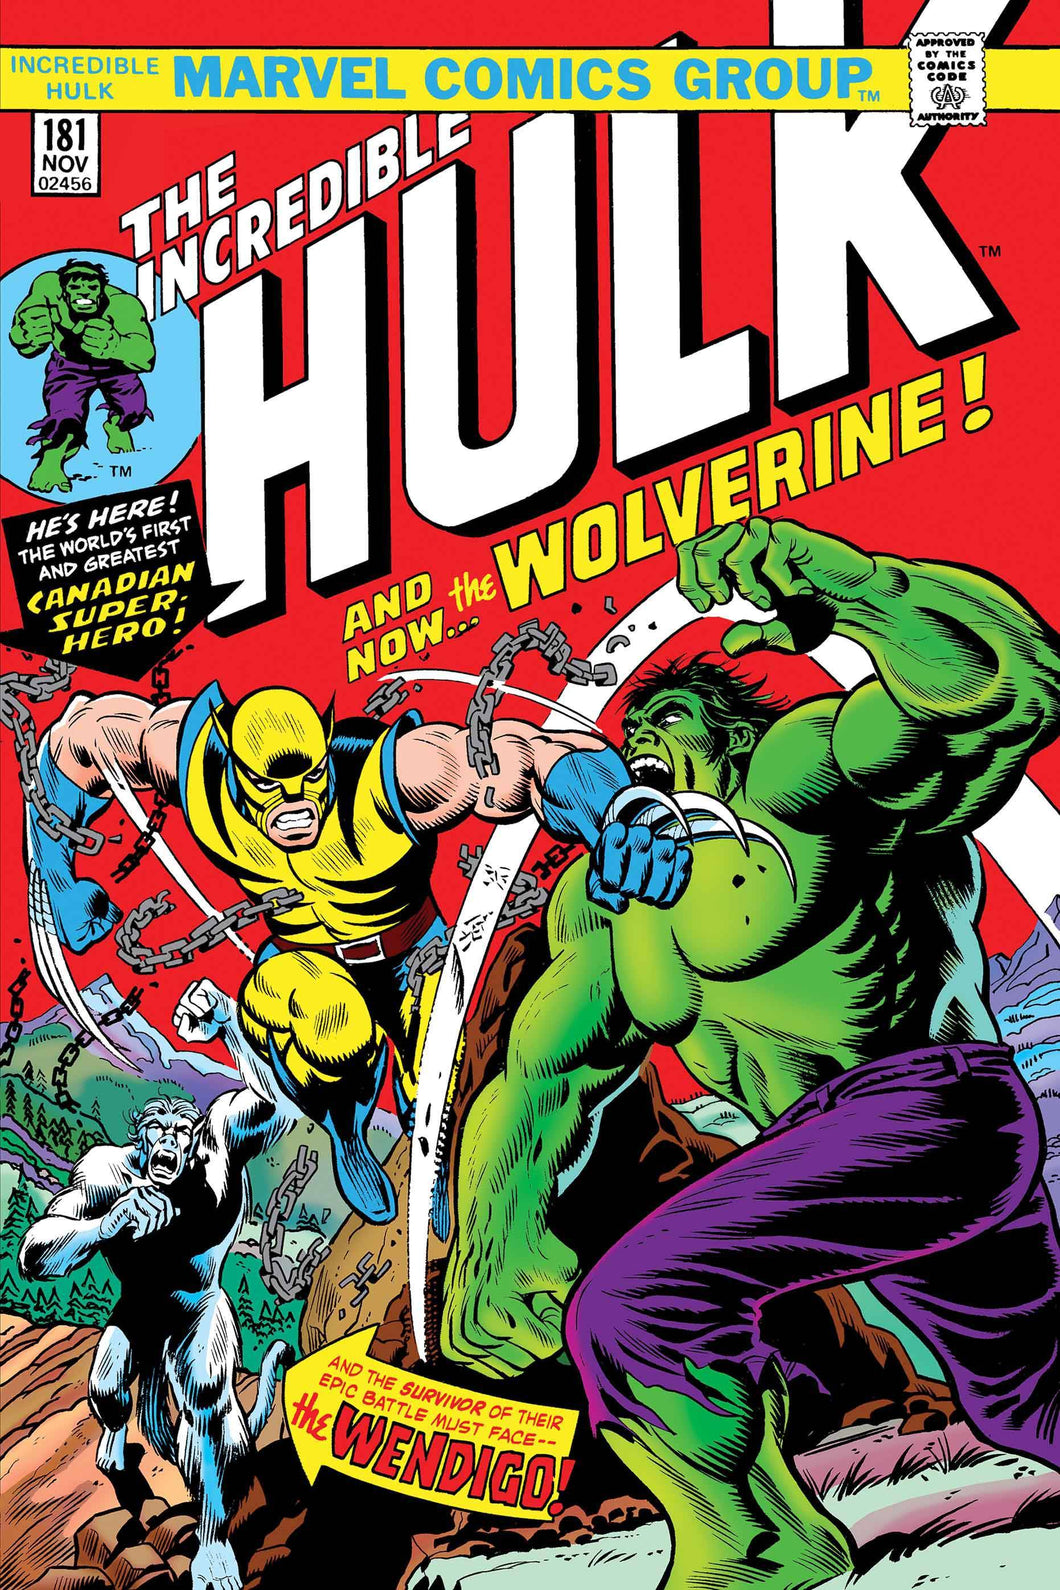 INCREDIBLE HULK #181 FACSIMILE EDITION NEW PTG  05/29/19 FOC 05/06/19